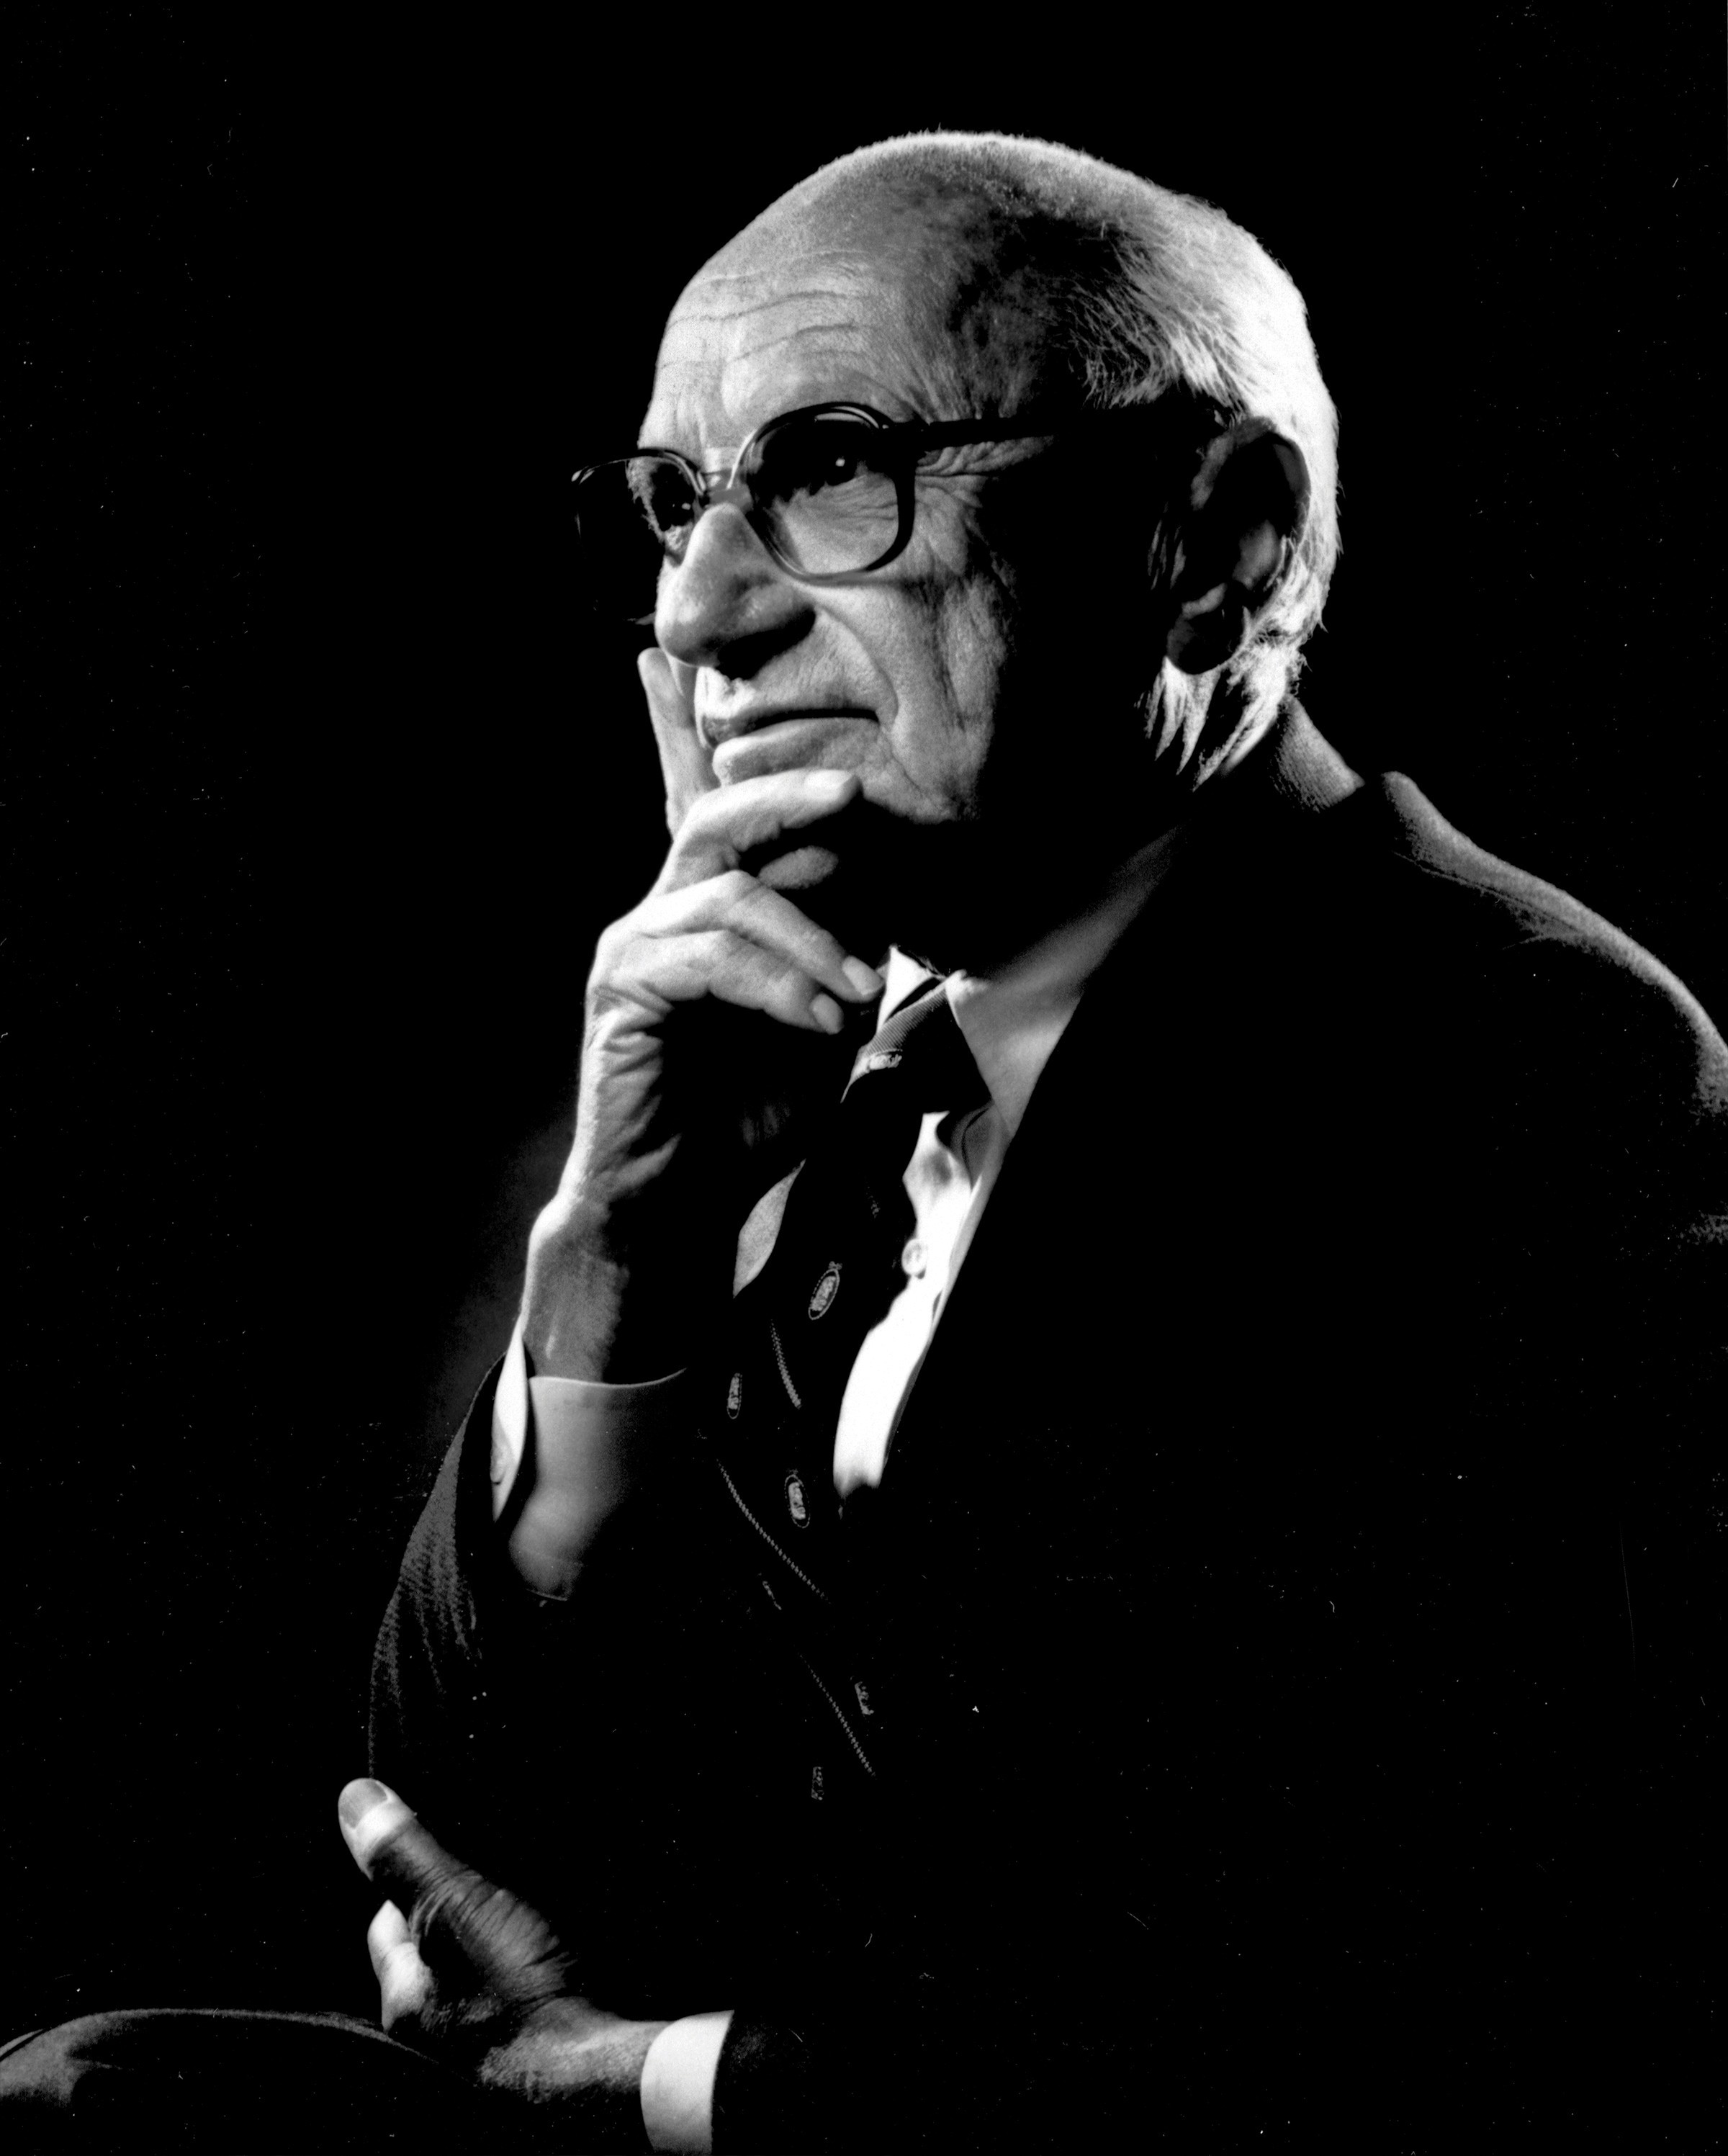 a description of milton friedman as a great life stories